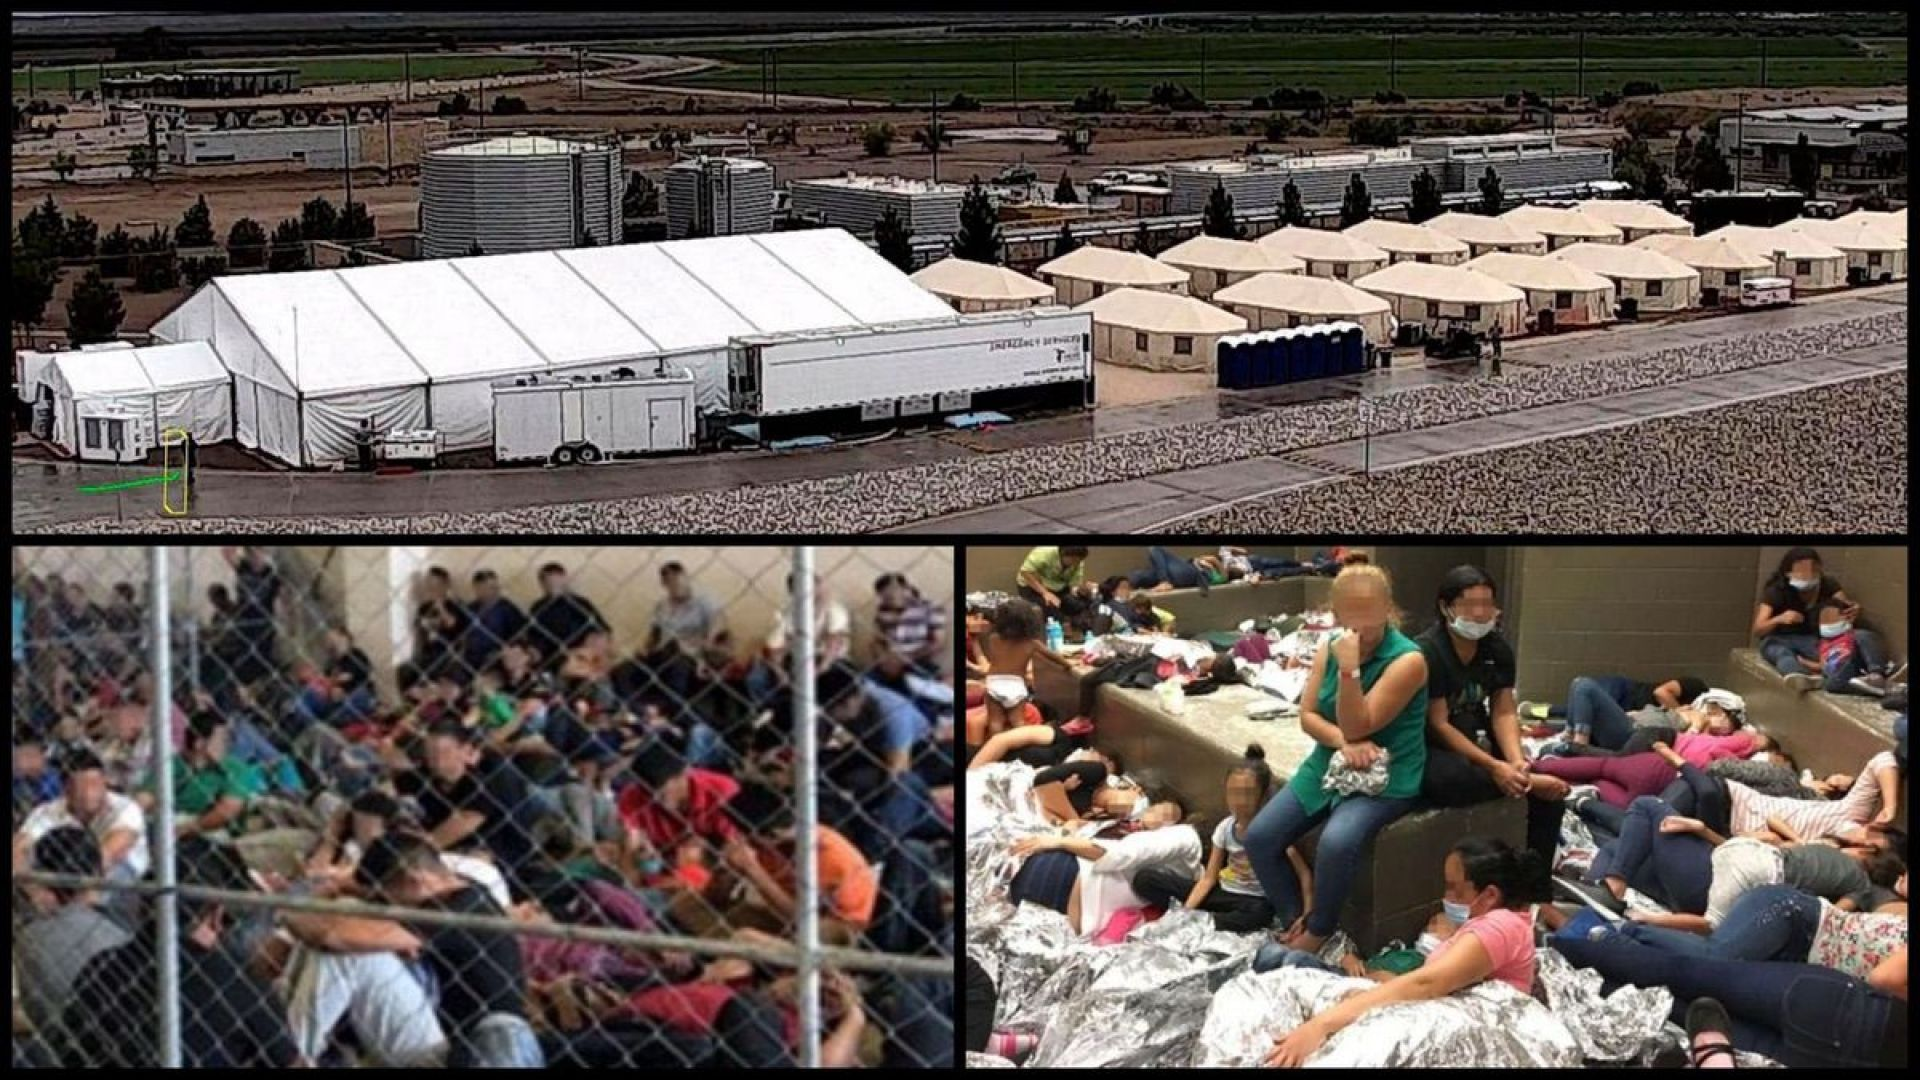 This undated photo of the shelters used to house unaccompanied foreign children in Tornillo, Texas. (HHS' Administration for Children and Families via AP). Overcrowding of families observed by OIG in June, 2019, at Centralized Processing Centers in Texas. (DHS Office of the Inspector General)